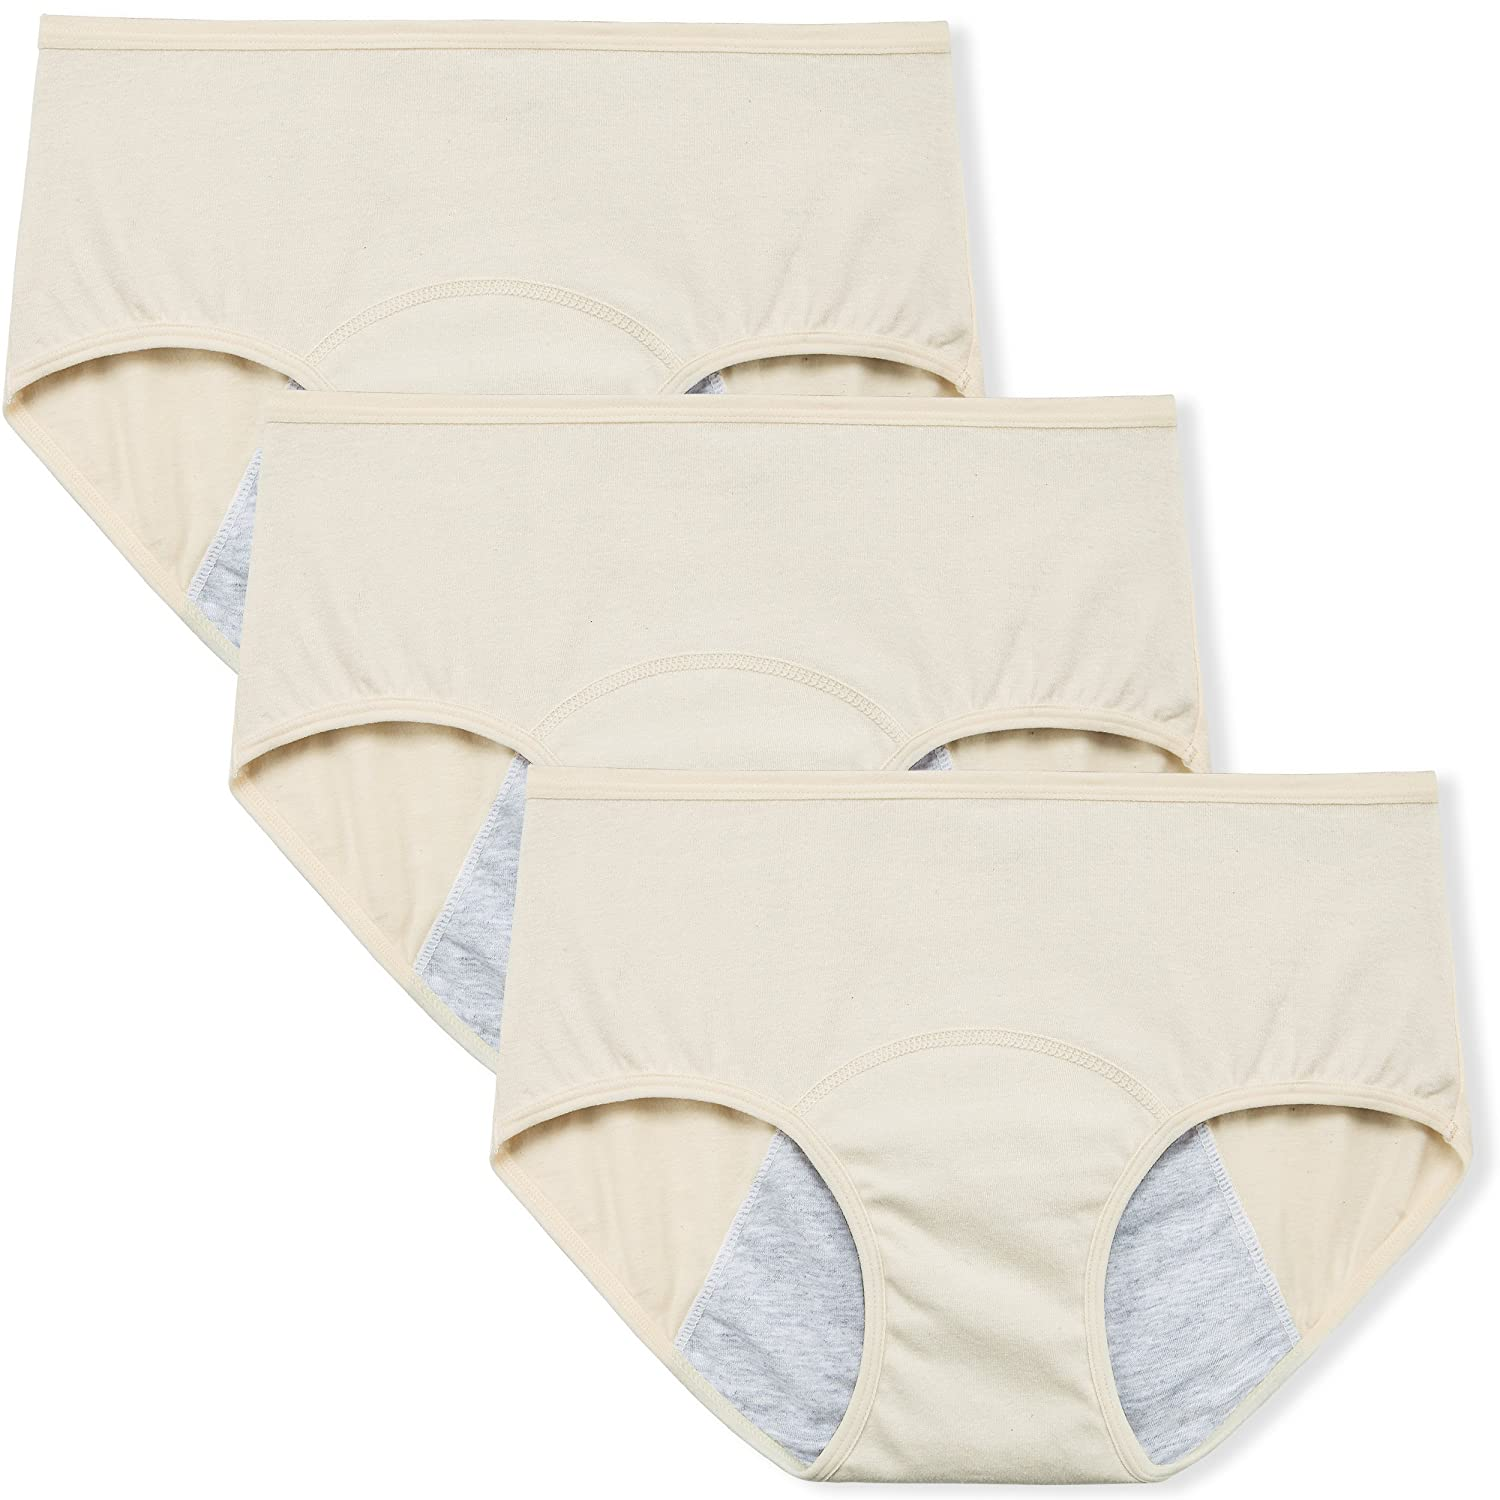 39ddc01700e5 Amazon.com: Innersy Women's Period Panties Menstrual Heavy Flow Postpartum  Underwear C-Section Recovery Maternity Hipster for Teens: Clothing